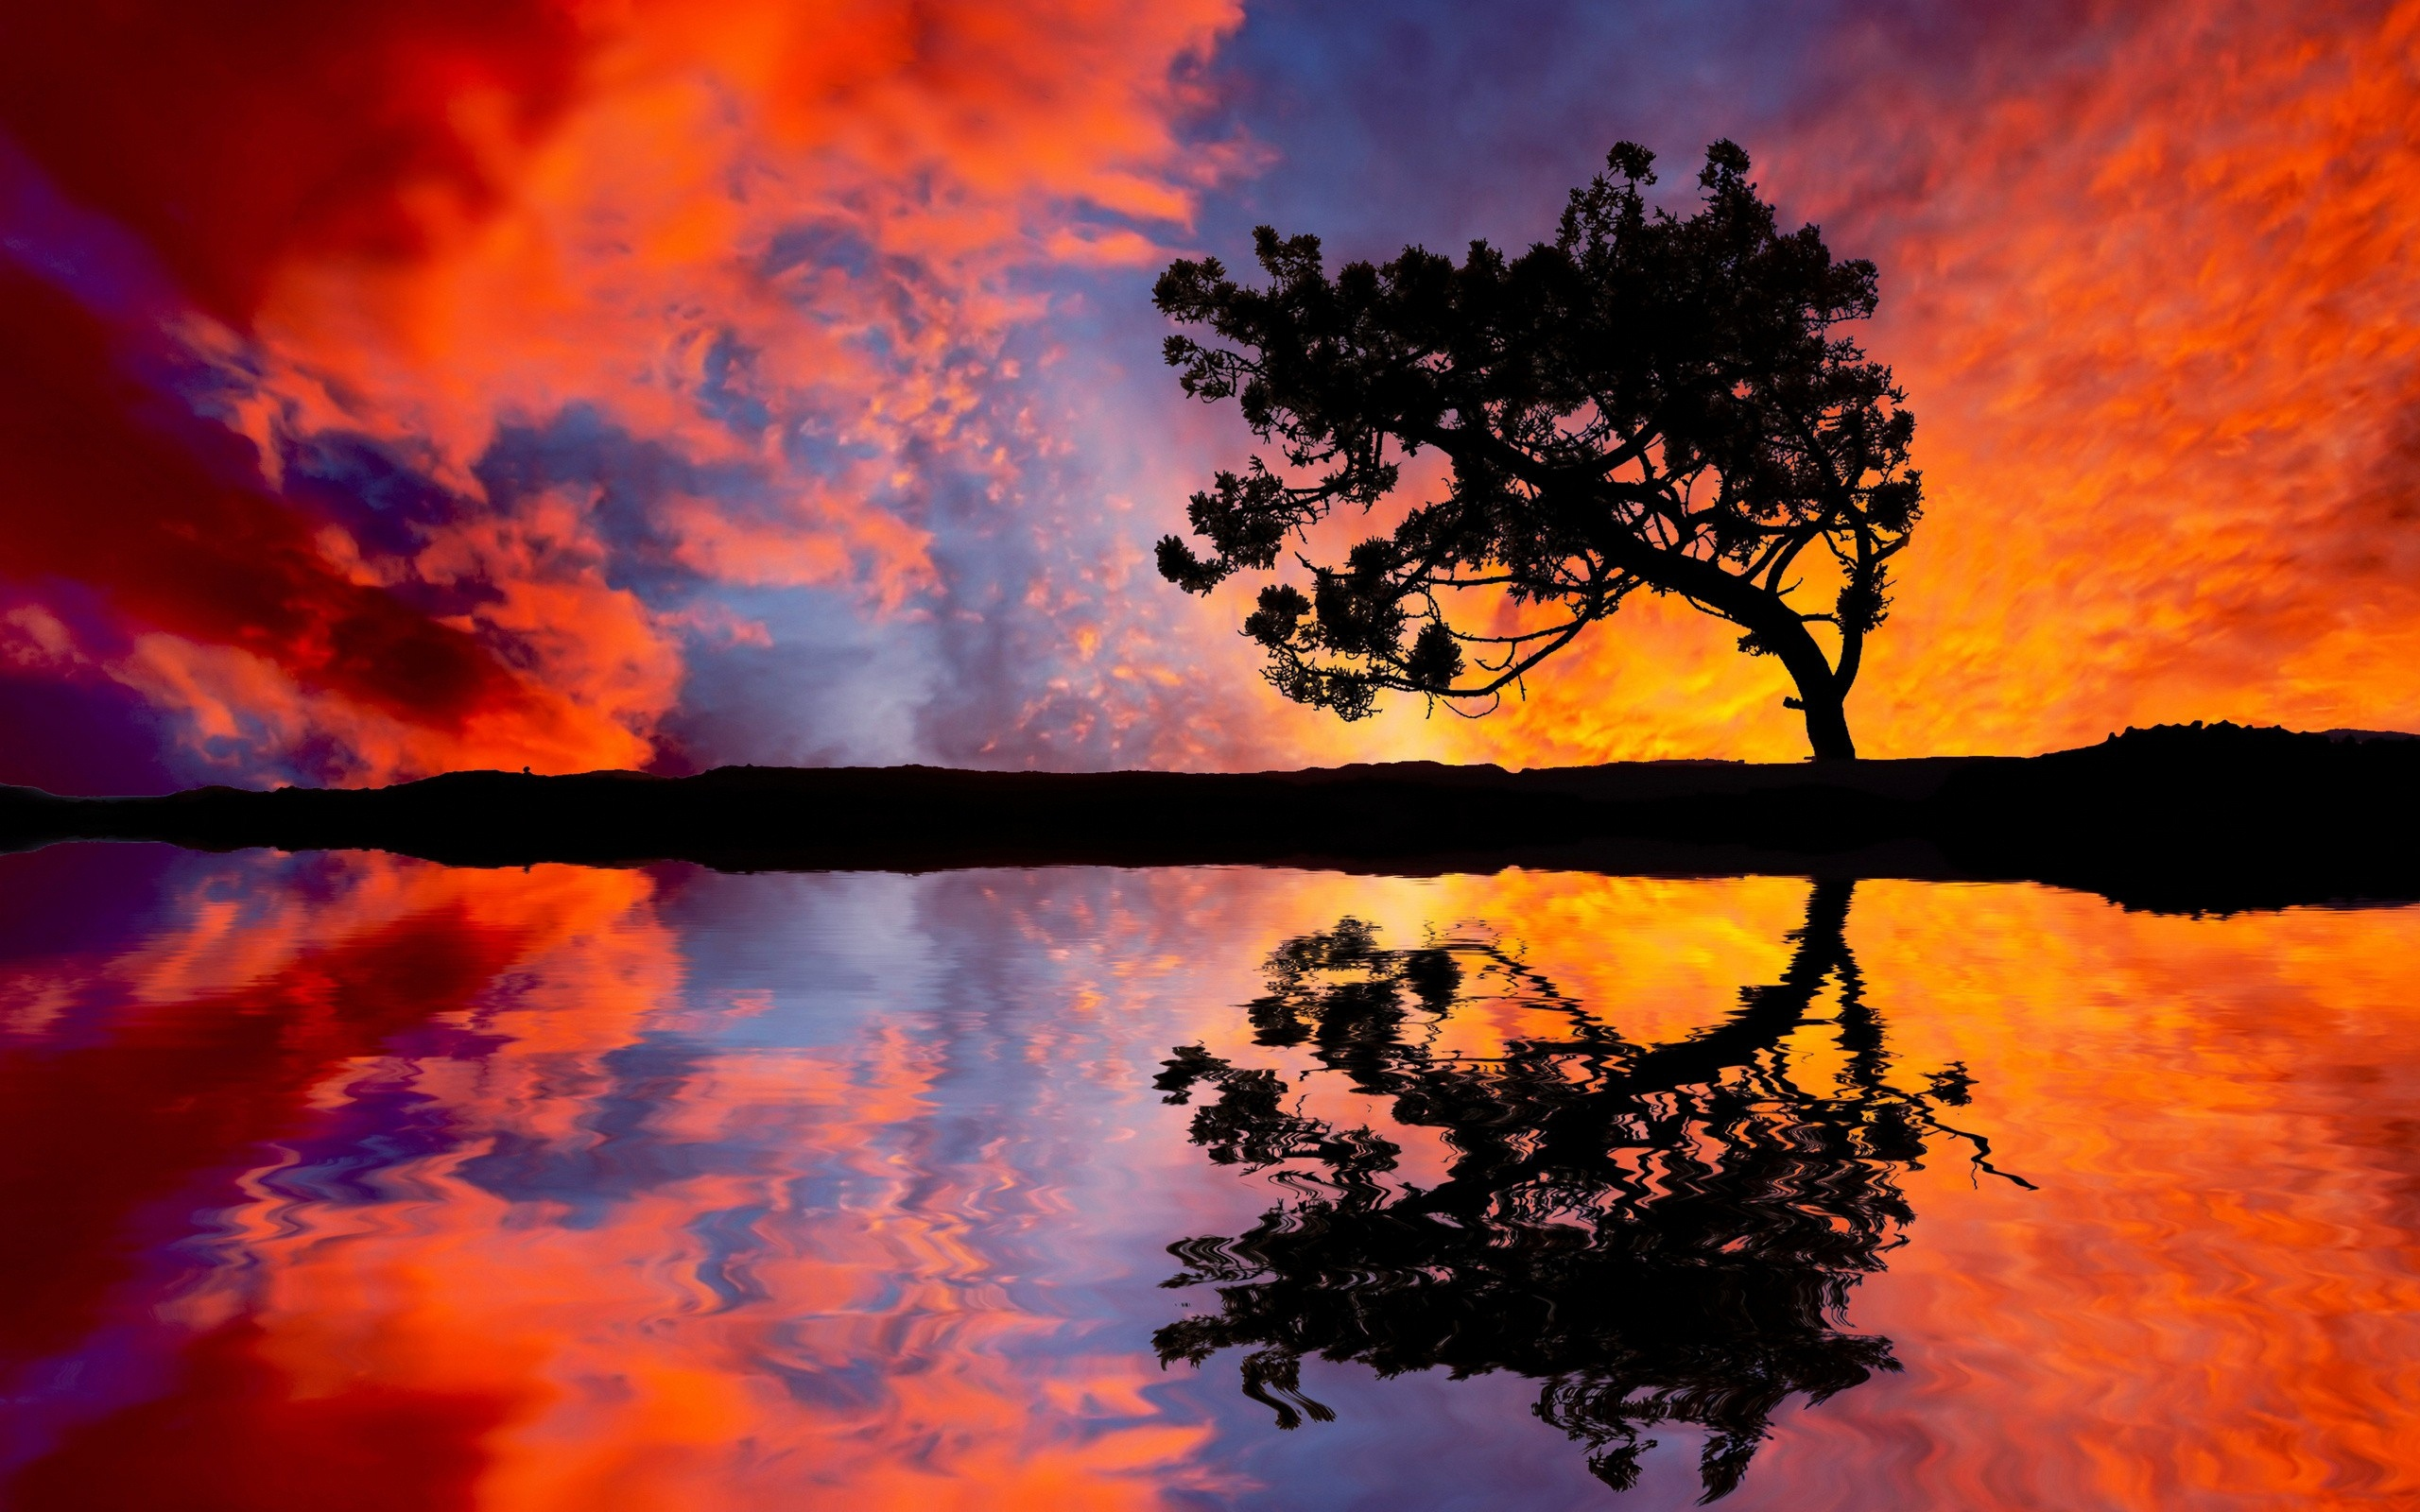 sunset pictures reflection